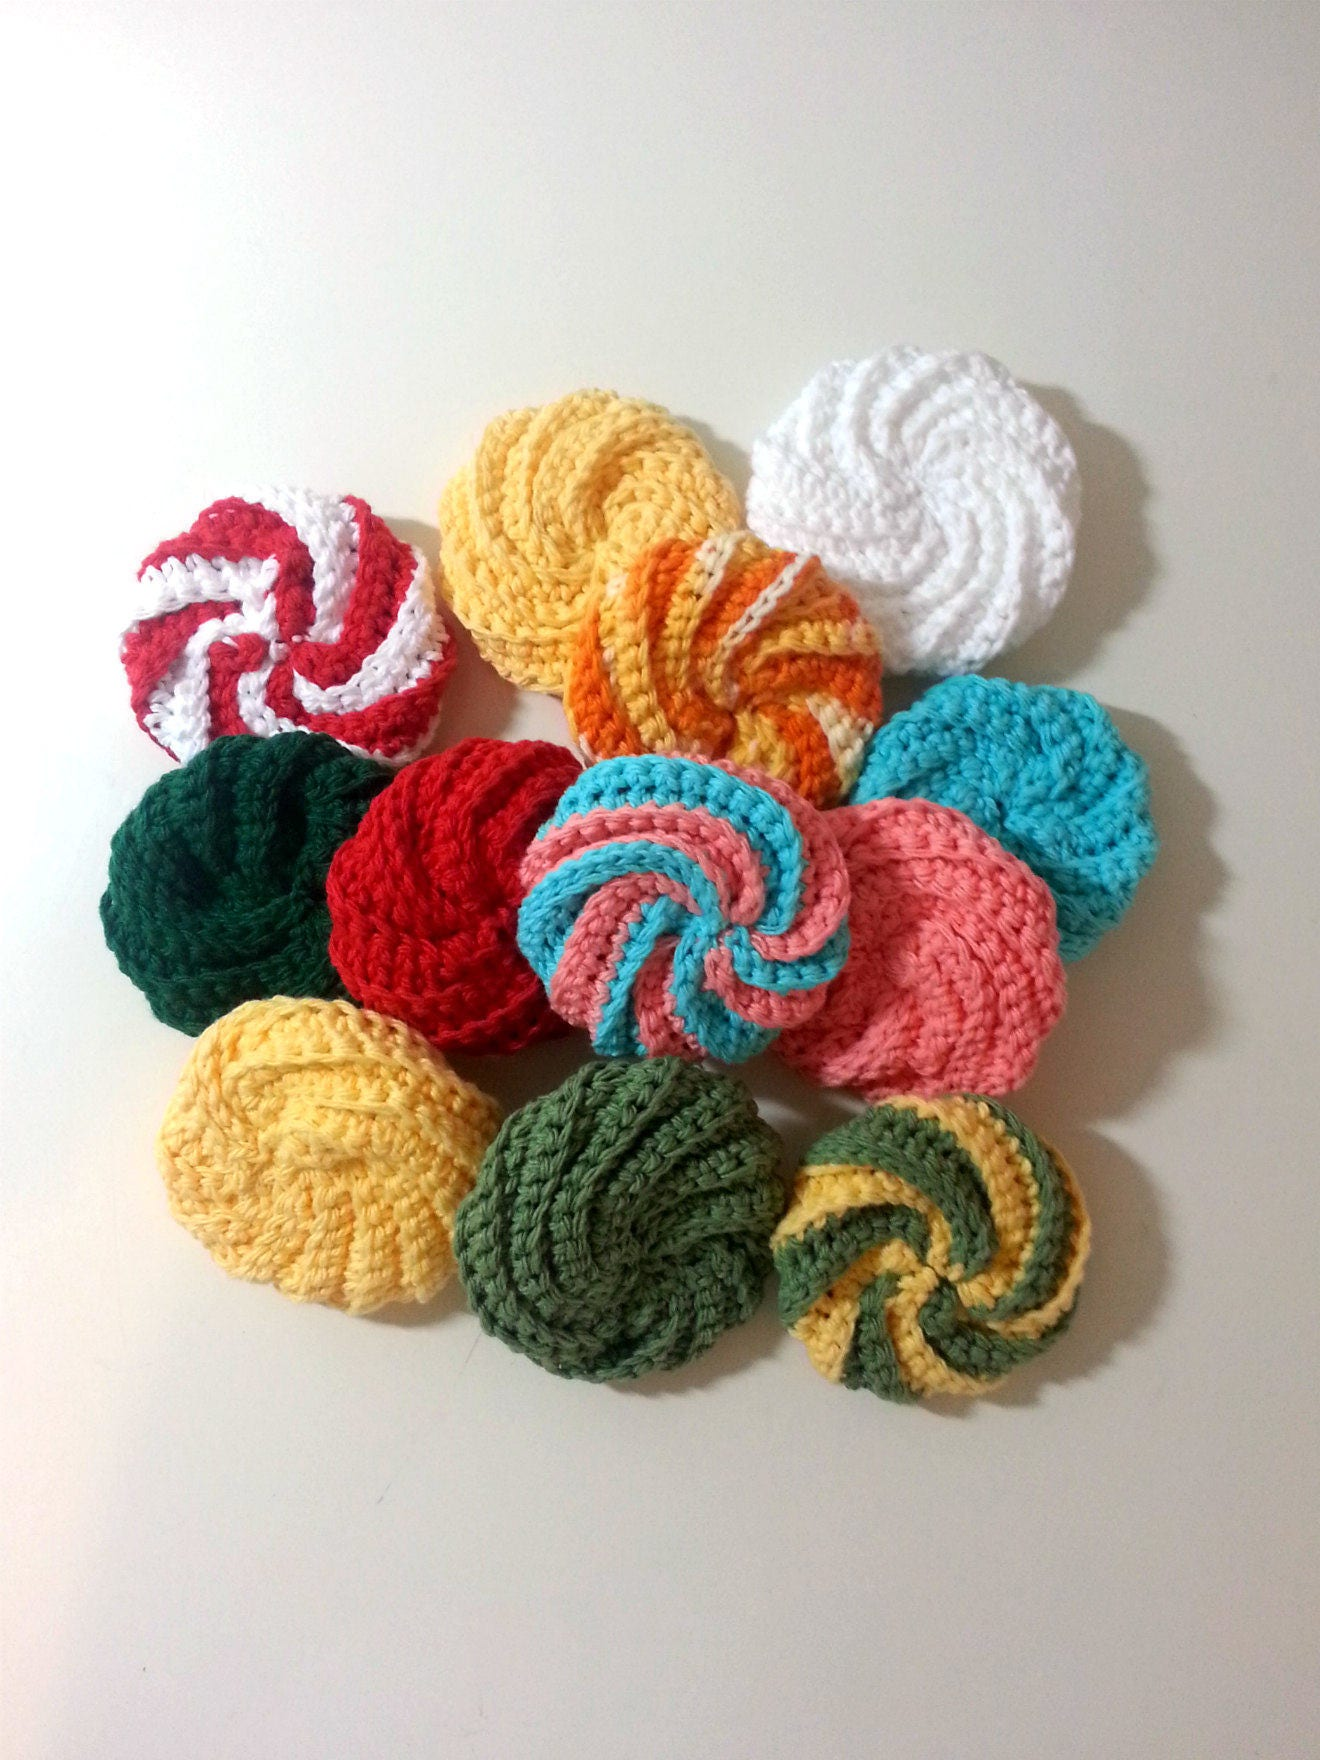 Spiral Crochet Scrubbie Twisted Scrubbers Cotton Dish Etsy